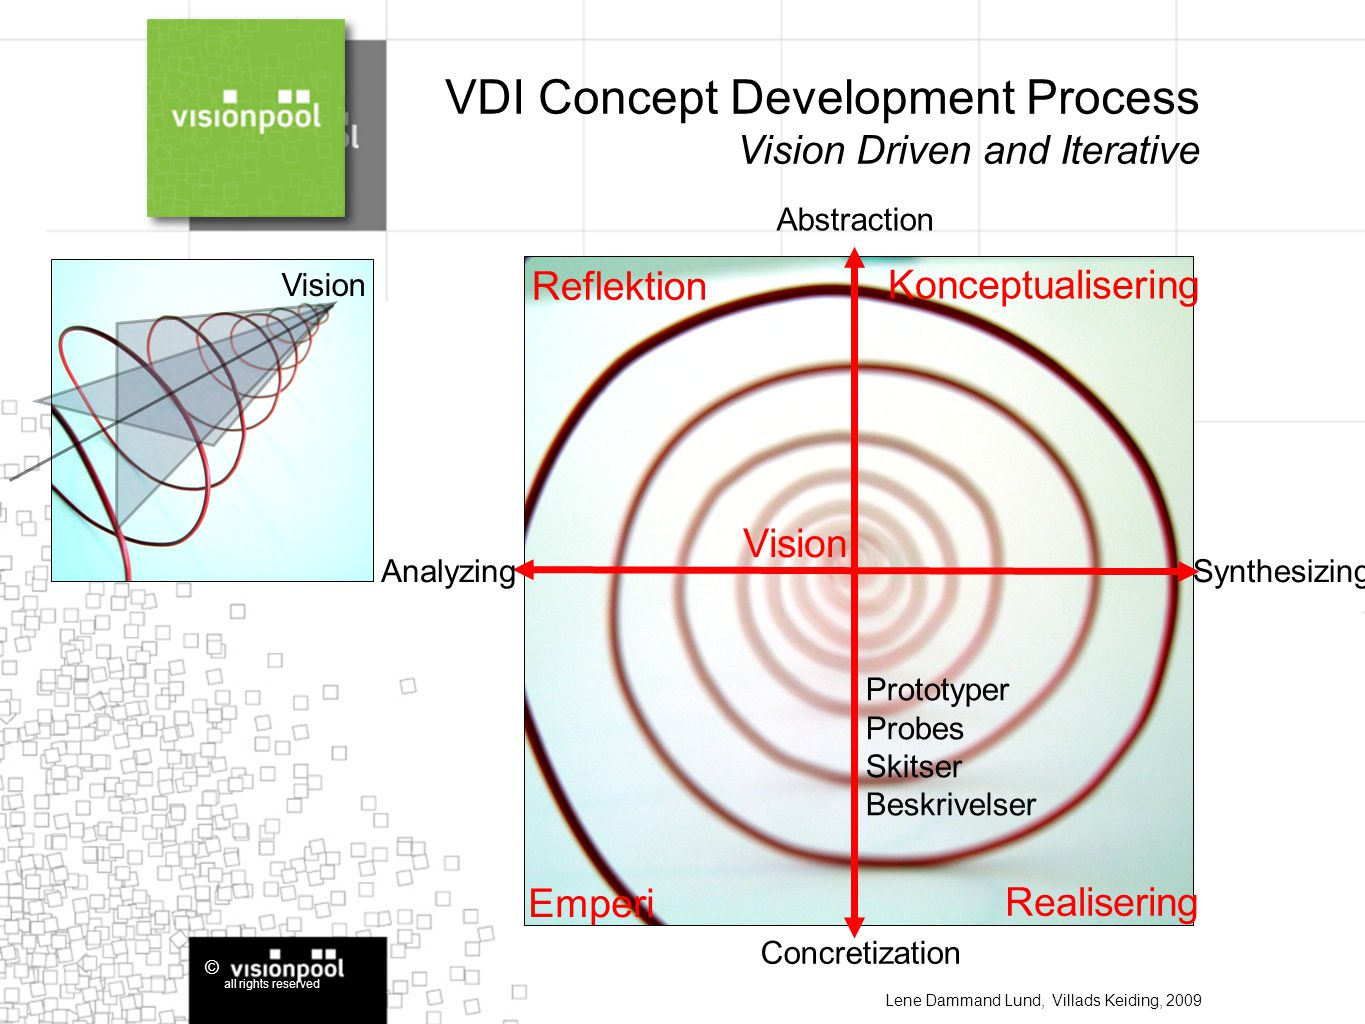 © all rights reserved Abstraction Concretization AnalyzingSynthesizing VDI Concept Development Process Vision Driven and Iterative Vision Lene Dammand Lund, Villads Keiding, 2009 Reflektion Emperi Konceptualisering Realisering Vision Prototyper Probes Skitser Beskrivelser